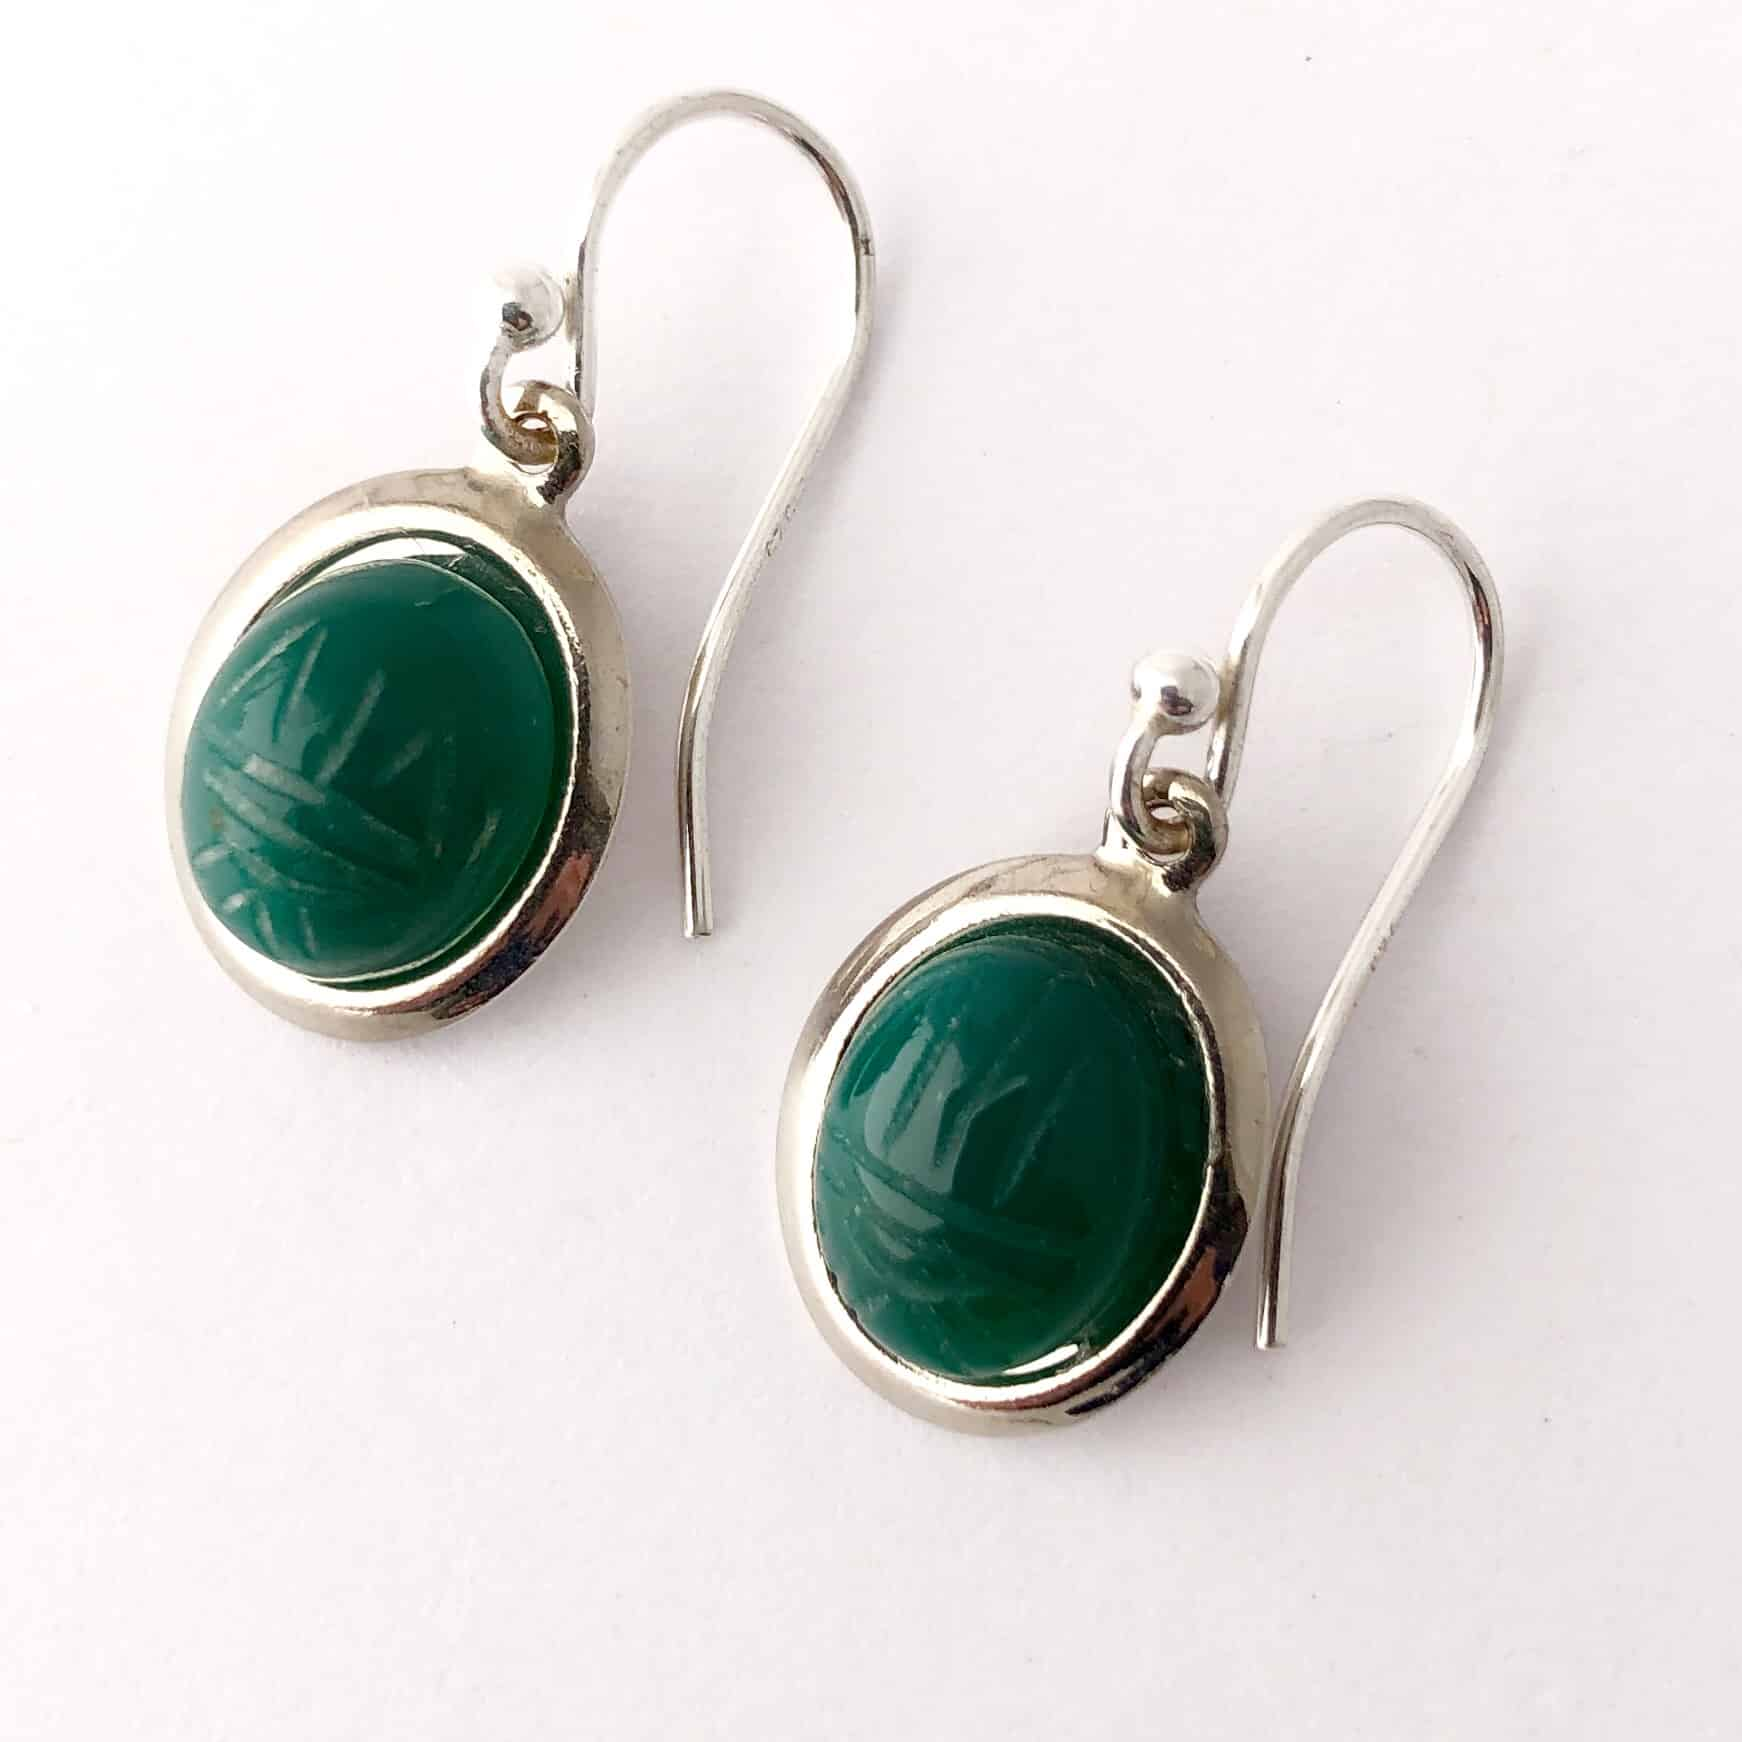 Vintage Green Onyx Scarab Earrings By My Vintage Obsession